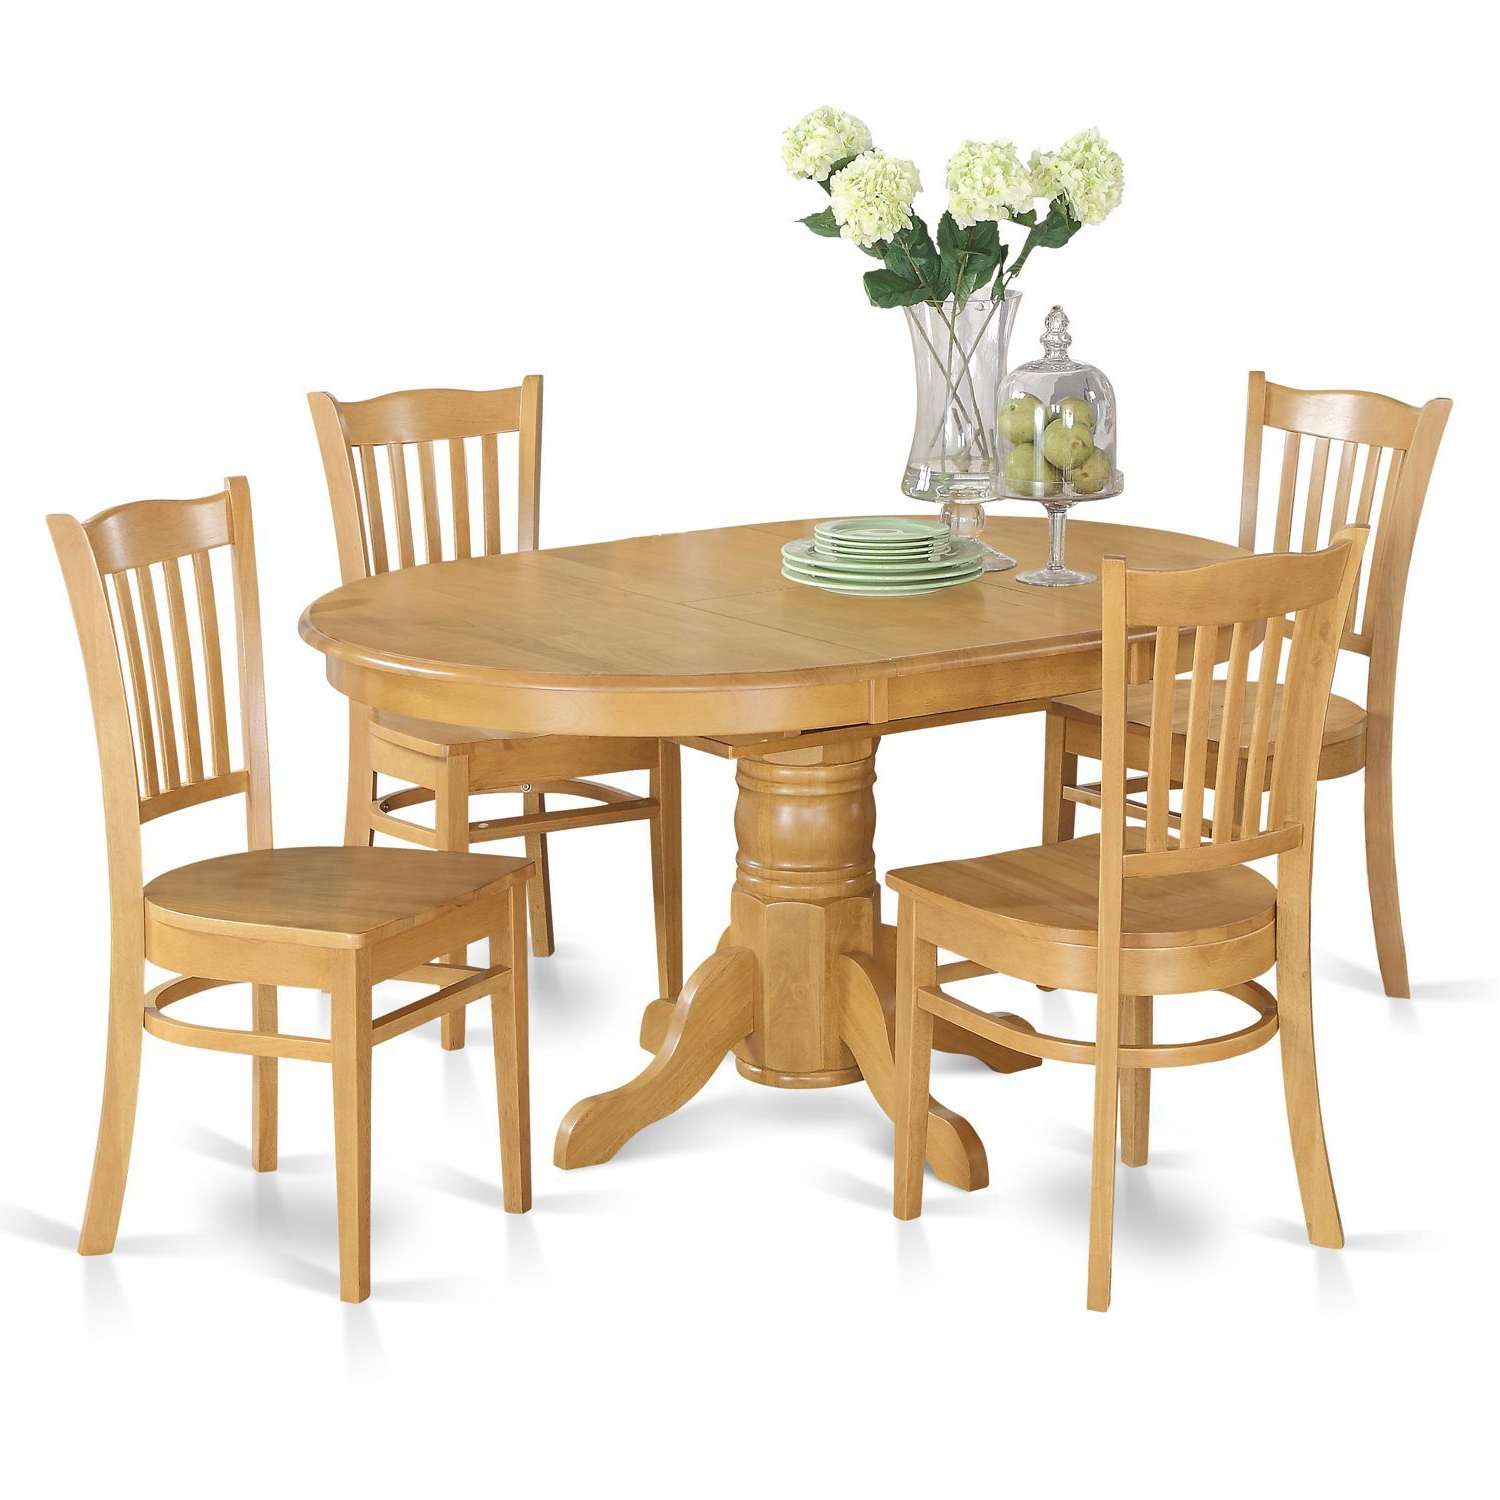 Most Up To Date 5 Piece Dining Table Set For 4 Table With Leaf And 4 Dining Chairs Within Goodman 5 Piece Solid Wood Dining Sets (Set Of 5) (View 15 of 25)